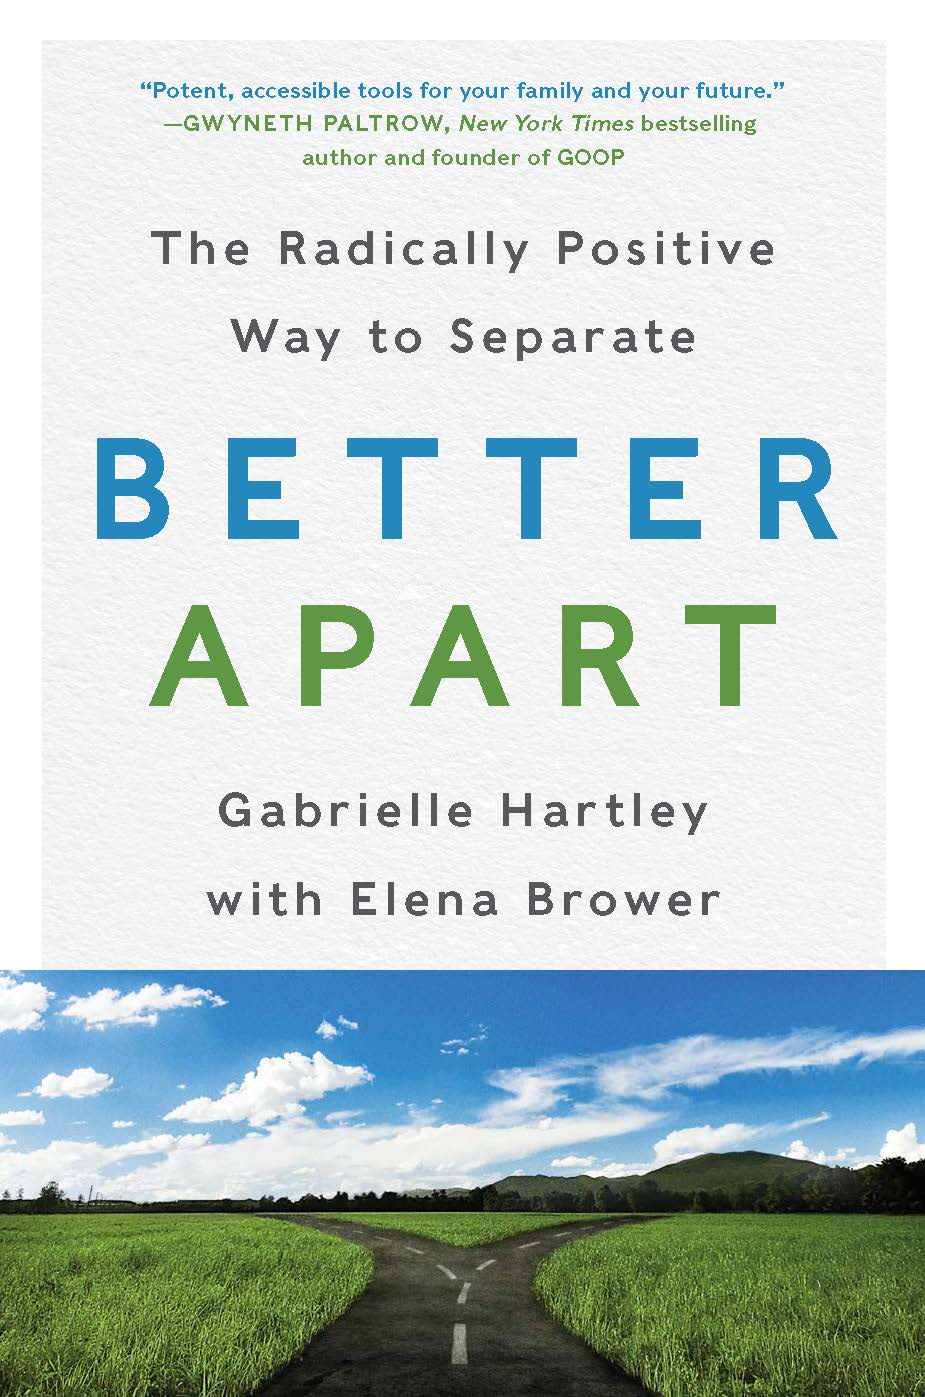 "When going through a tough experience or big transition in your life, how do you navigate the chaos and reach the other side better than you were before? - My friend, Gabrielle Hartley wrote an amazing book, Better Apart: the radically positive way to separate. It combines legal wisdom with many ""potent accessible tools"" (as described by Gwyneth Paltrow) to help you change your experience and your future when going through a challenging experience such as divorce.As a child of divorced parents myself, I'm so glad to be speaking with Gabrielle about her book and even more excited to share how accessible these tools are for anyone in life.Gabrielle's 5 tools are:PatienceRespectClarityPeaceForgivenessEach of these tools is designed to help you create a new pathway during a break-up (for my readers context, perhaps from an old job) and in life.Have a listen to the first audio interview I've ever done (eek!) to learn more:"